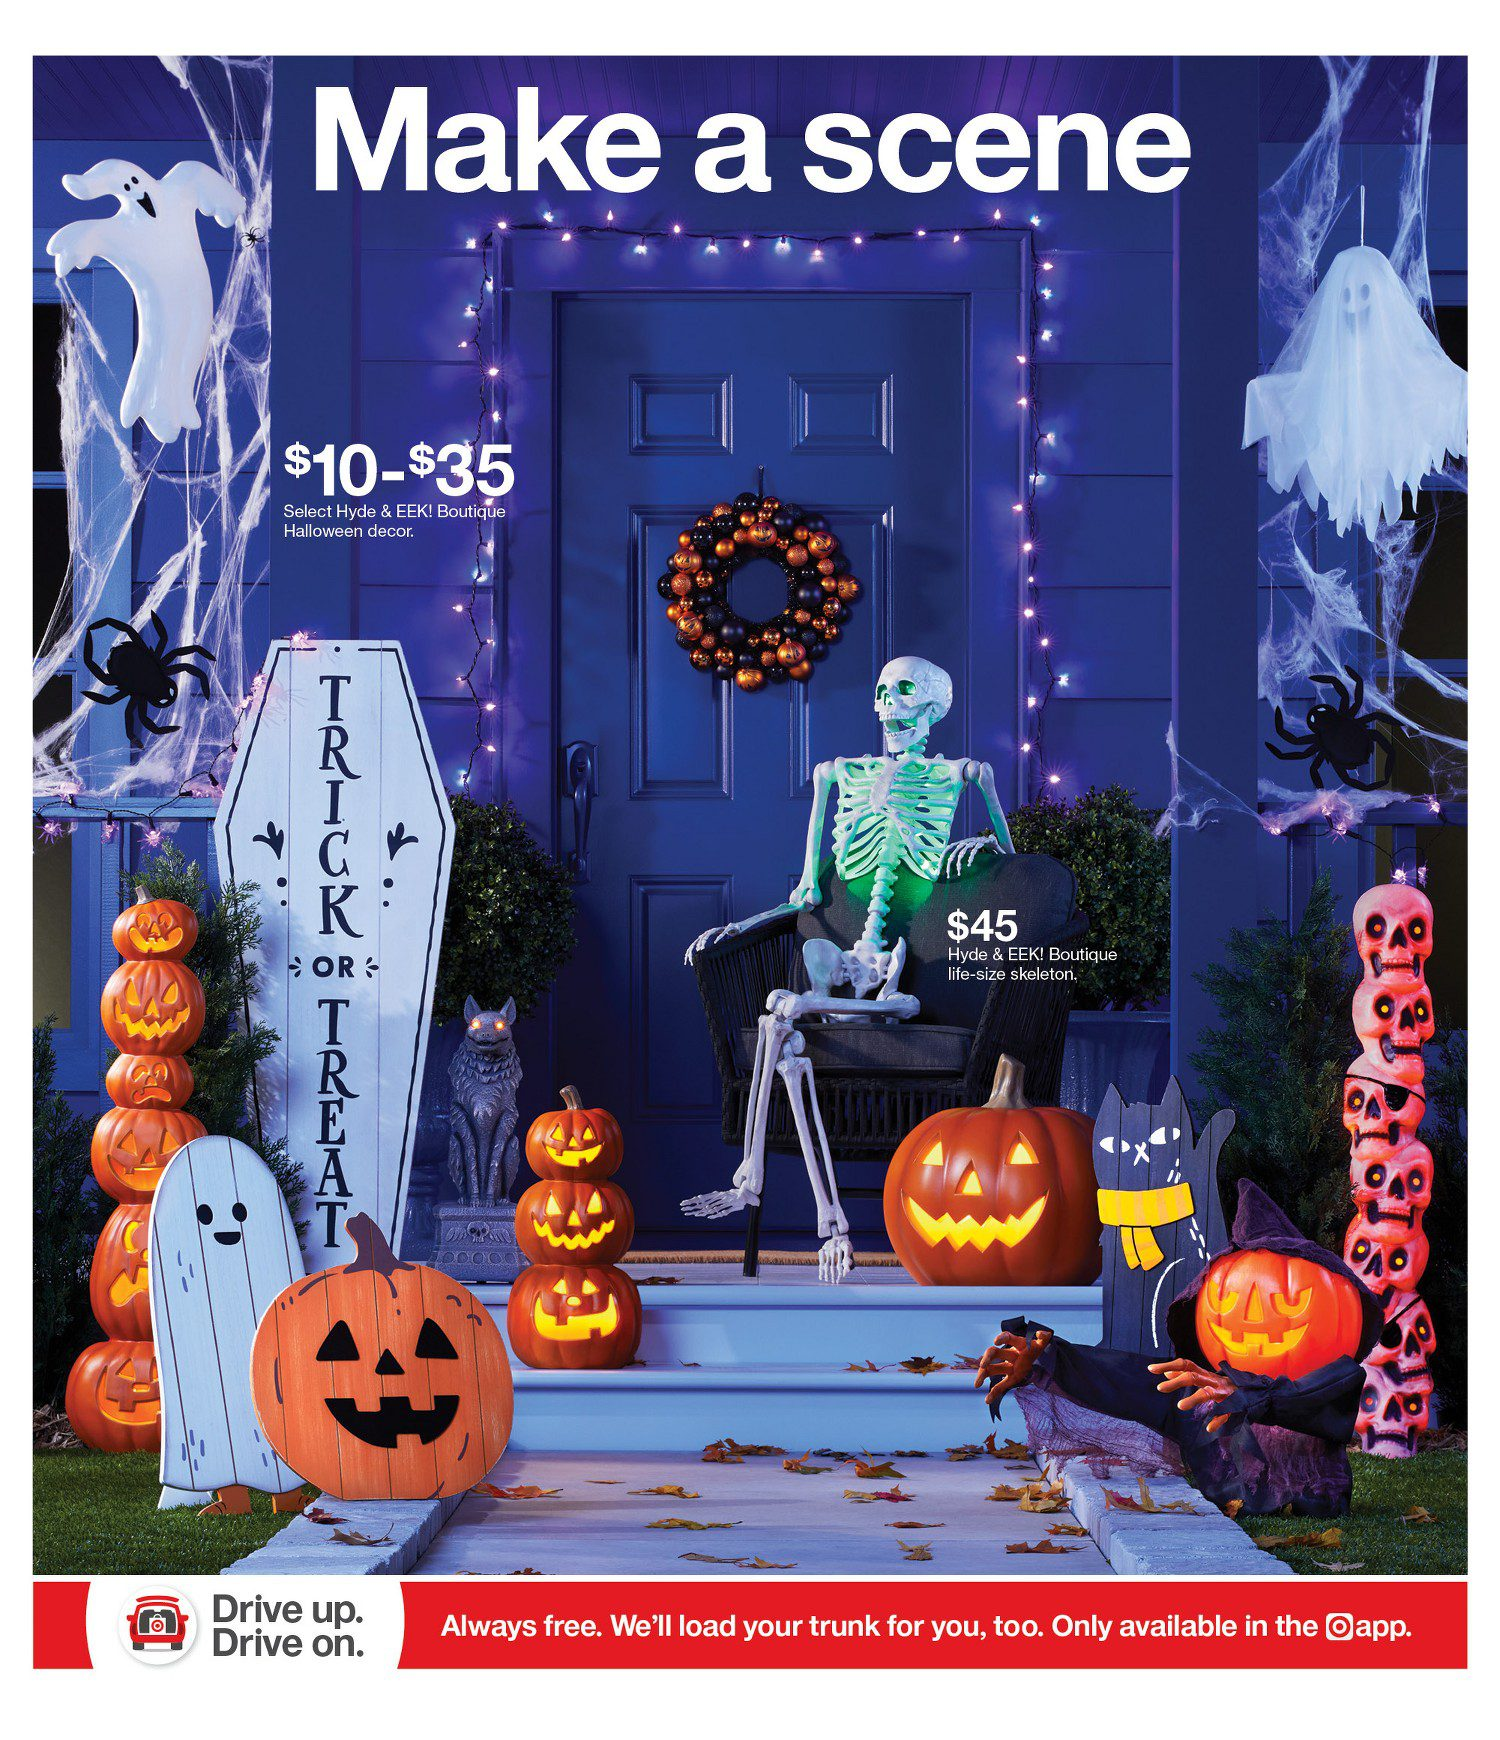 Target Weekly Ad 10-3-21 Page 3